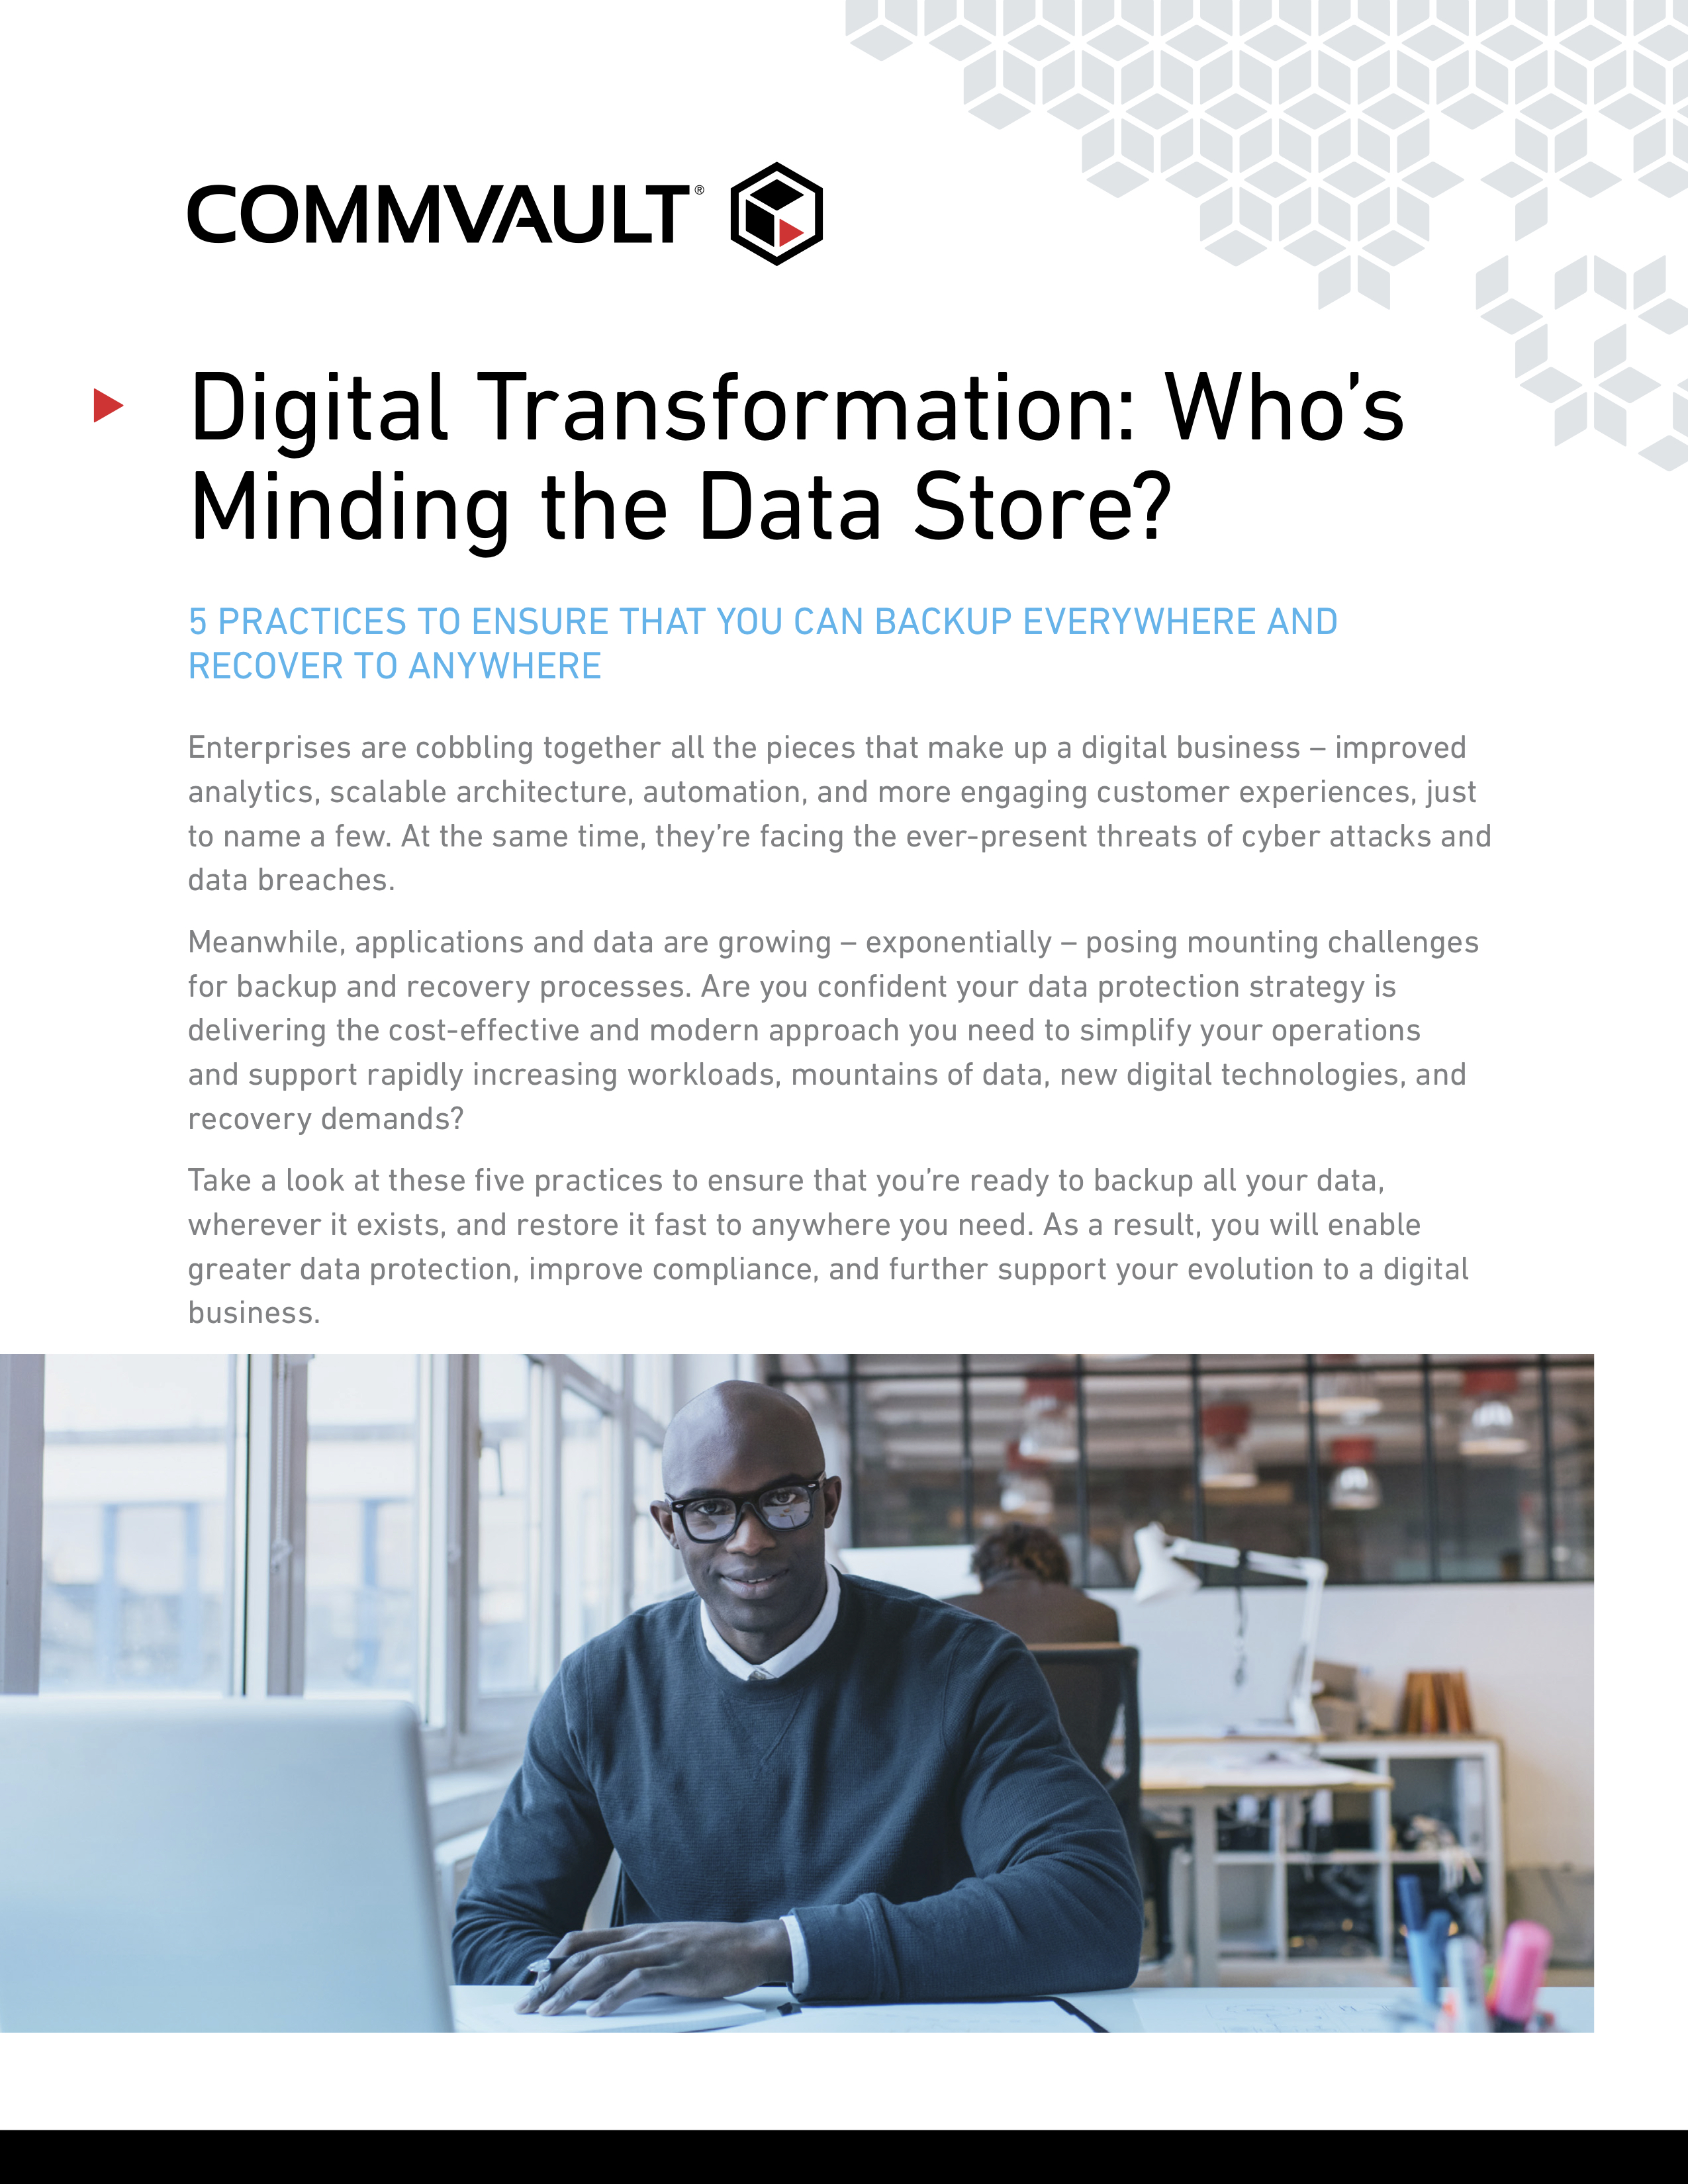 Digital transformation whos minding the data store